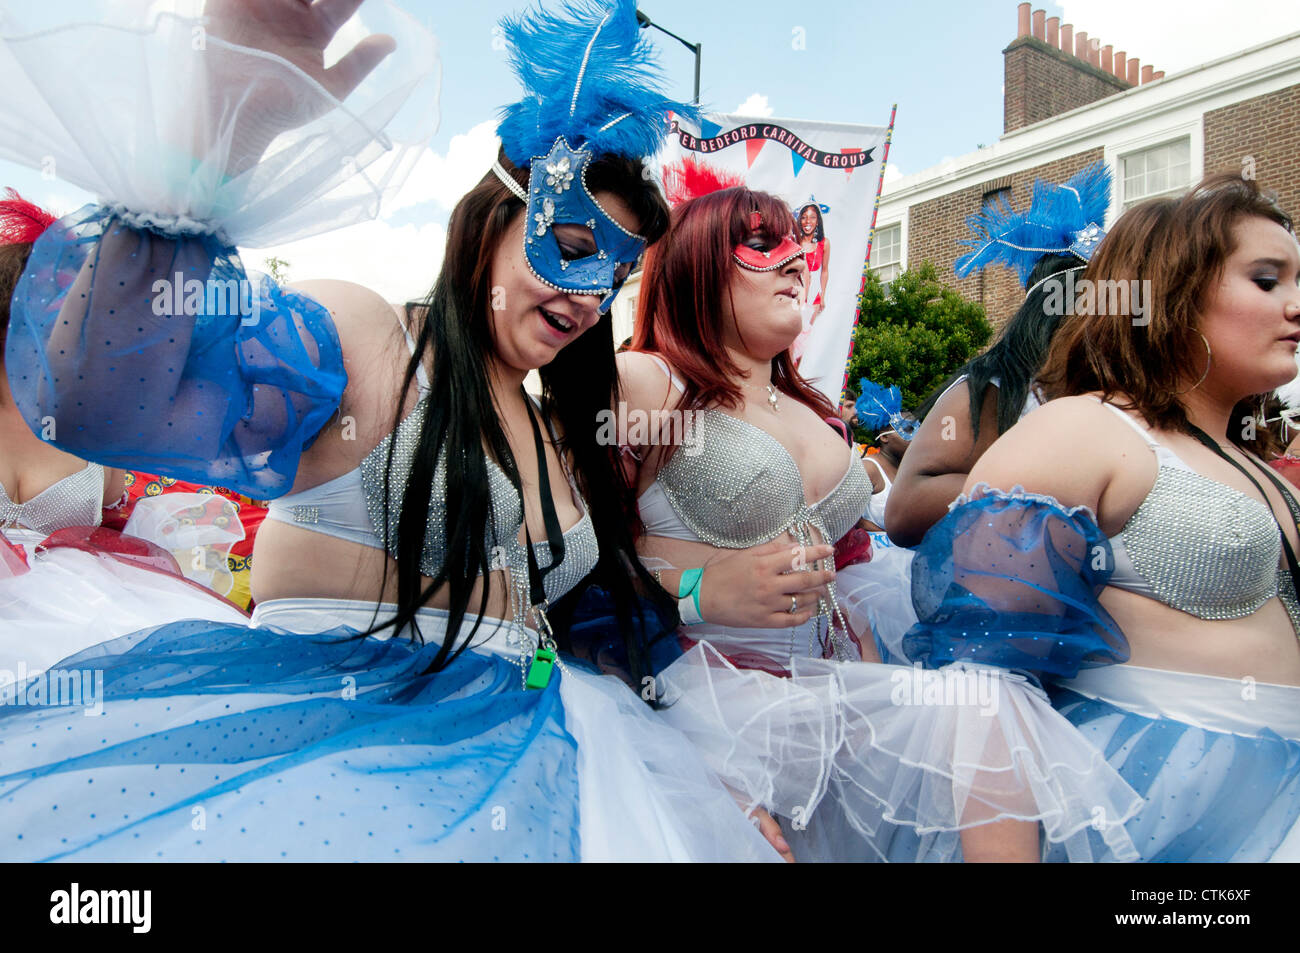 Hackney carnival parade .Young buxom women parade proudly in bra tops ,taffeta skirts and feather headresses - Stock Image